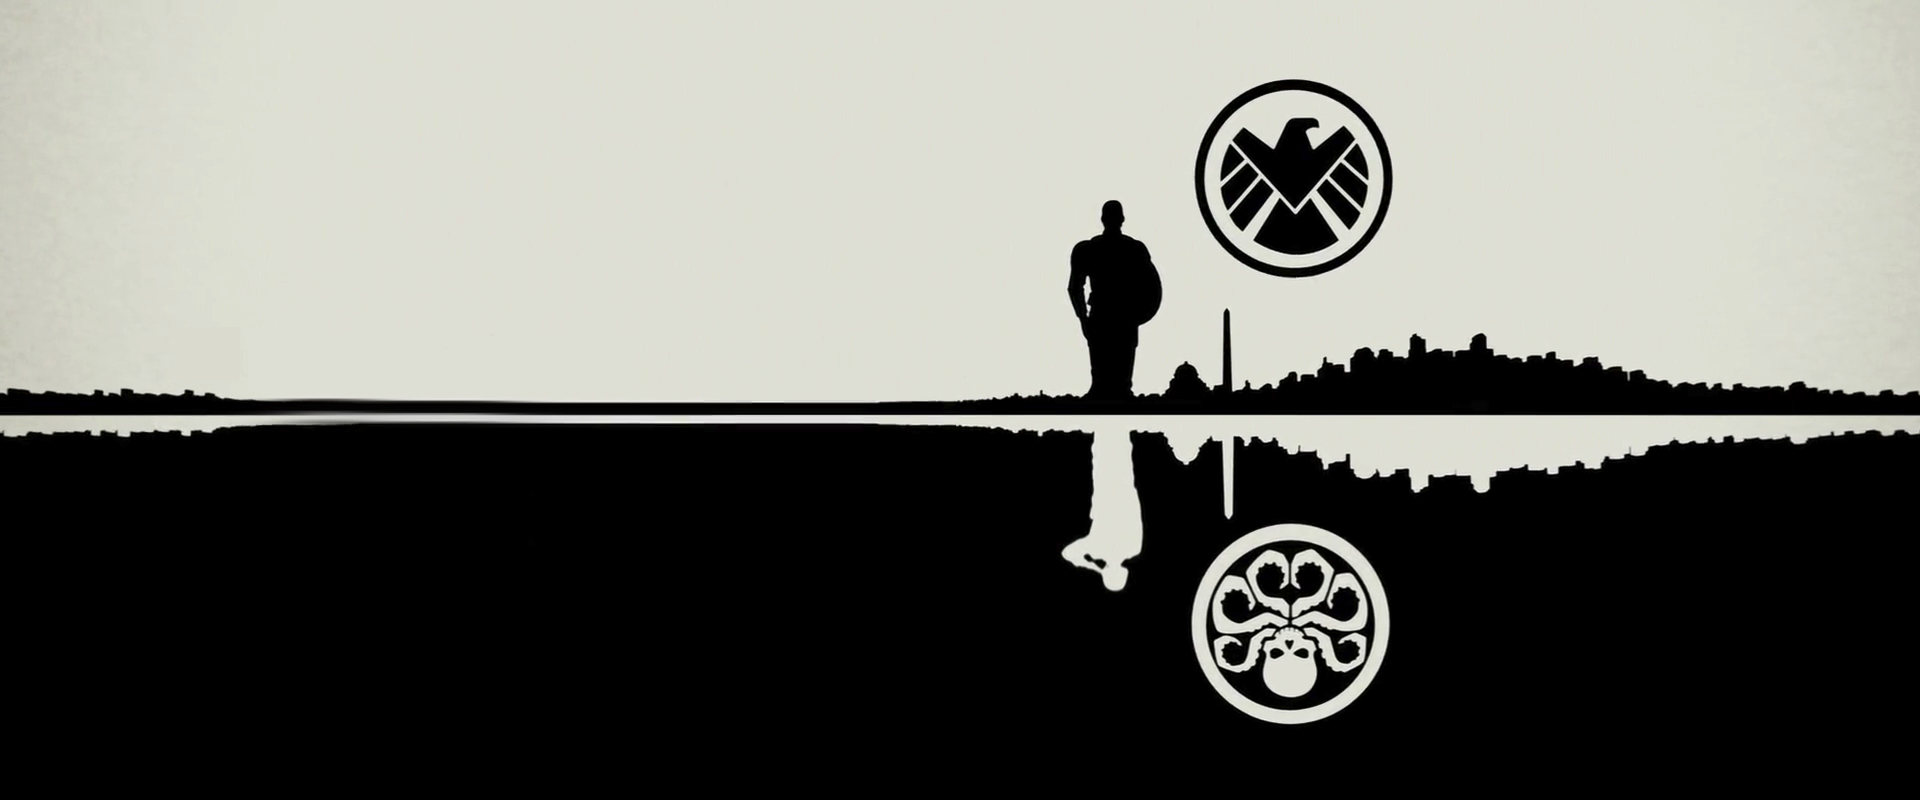 agents of s.h.i.e.l.d. wallpaper and background image | 1920x800